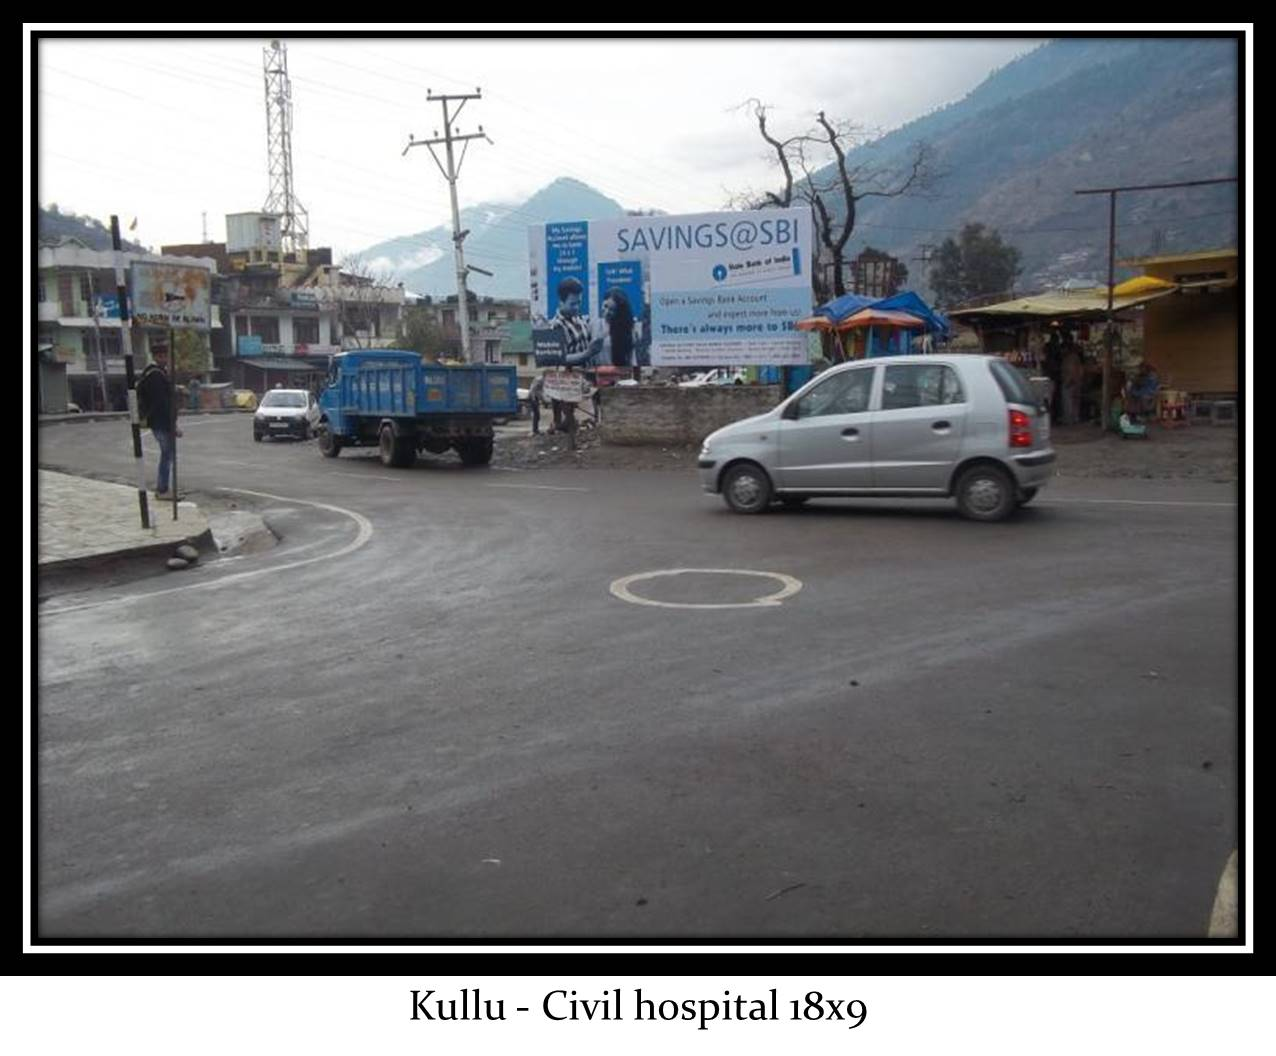 Civil hospital, Kullu